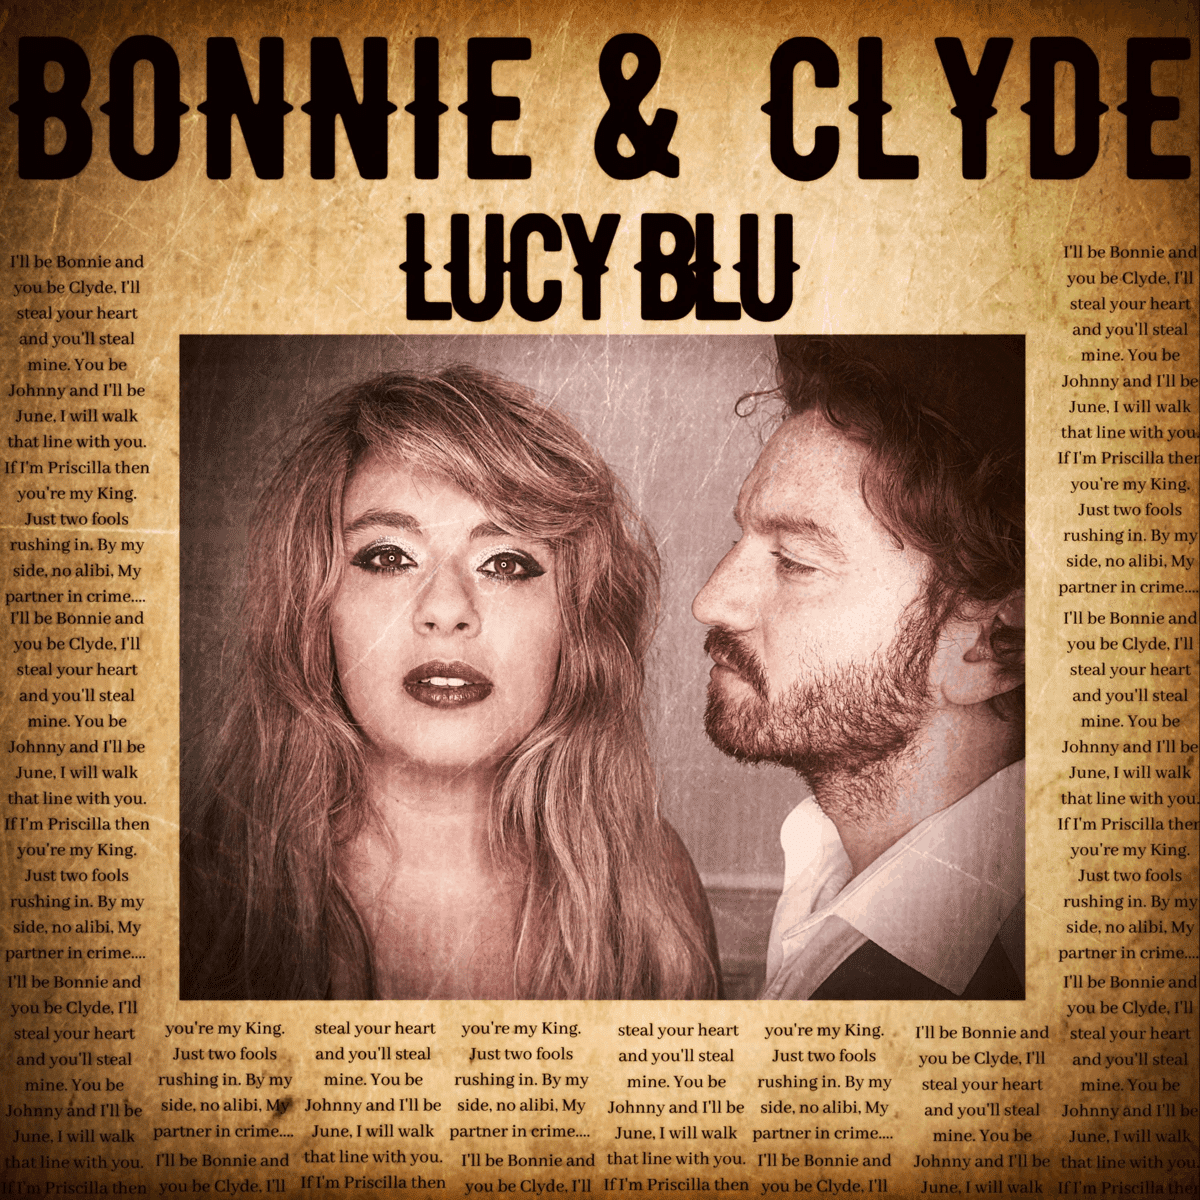 Lucy Blu releases Bonnie & Clyde